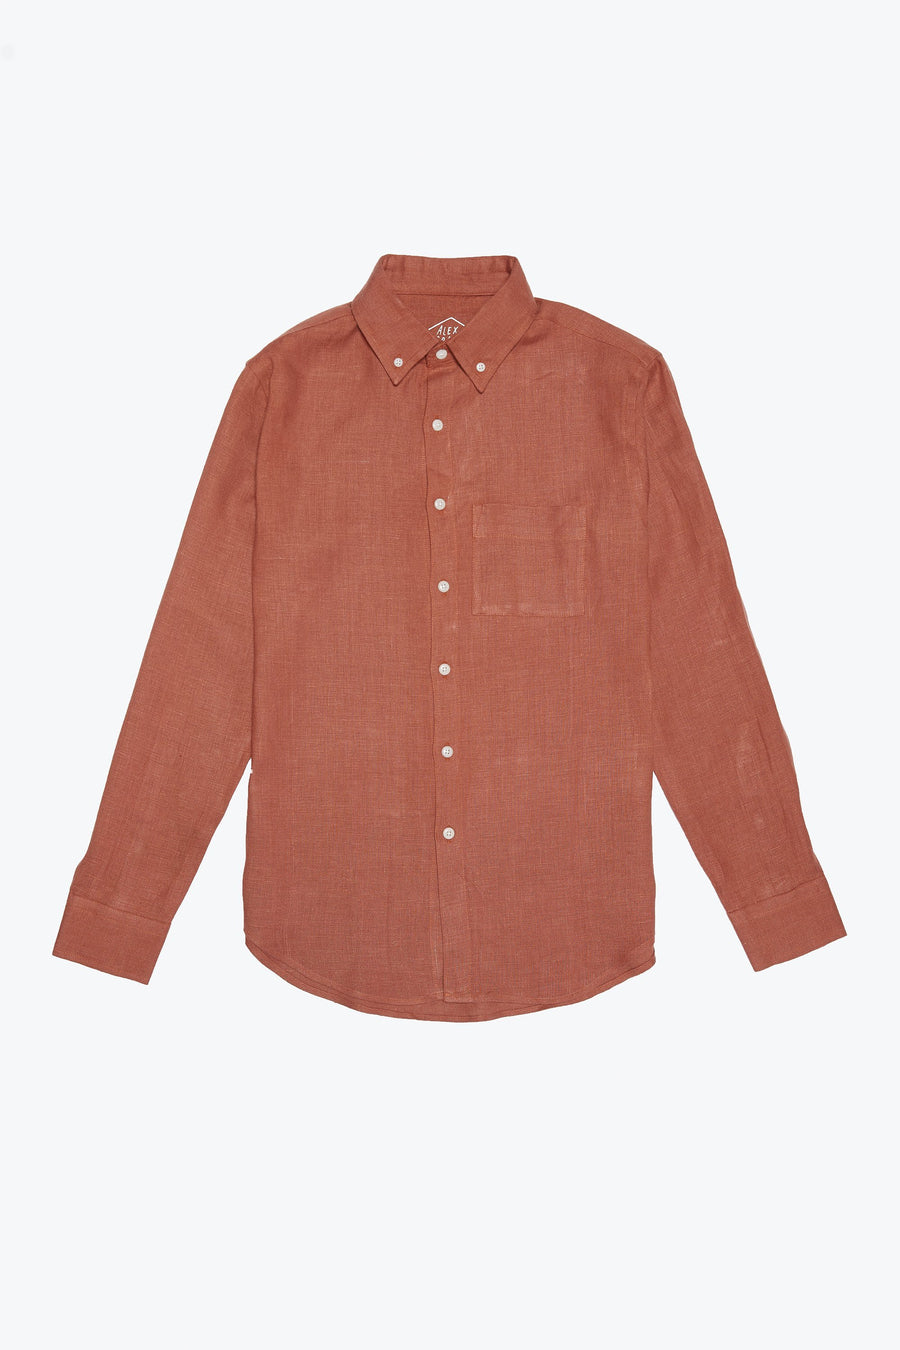 Playa Shirt - Sequoia-Alex Crane-MONIKER GENERAL